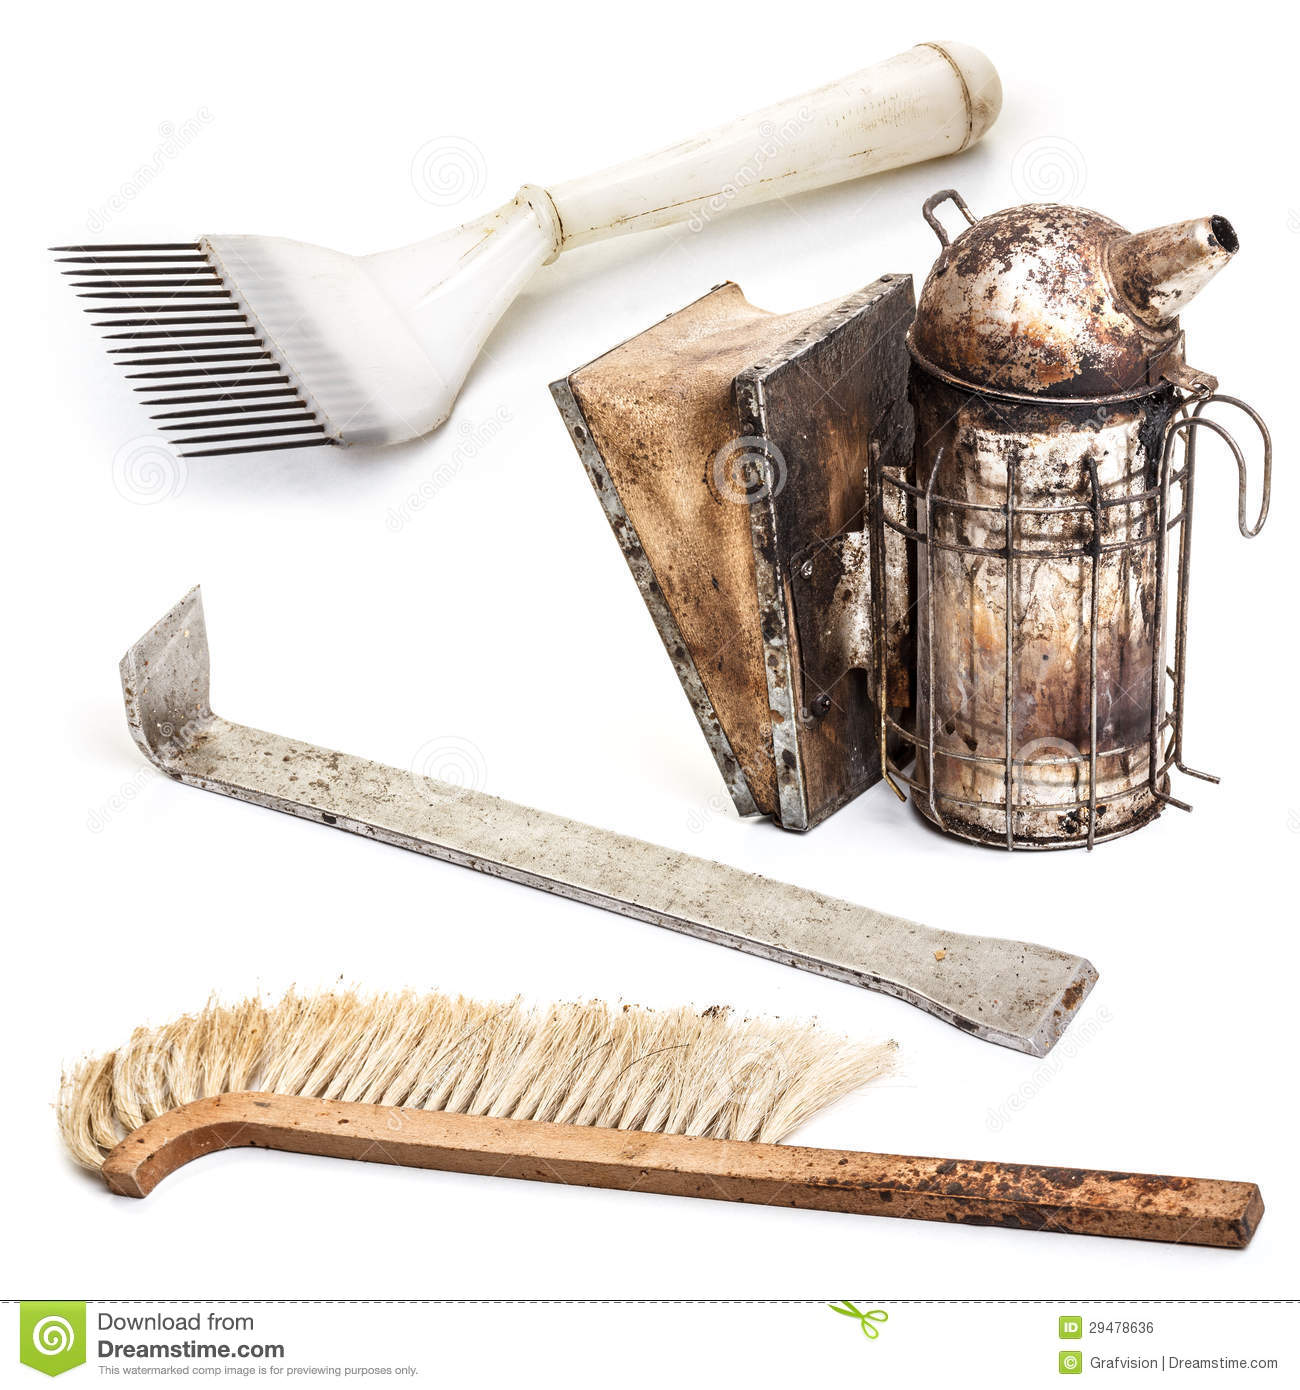 Beekeeping equipment royalty free stock image image for Salon apiculture